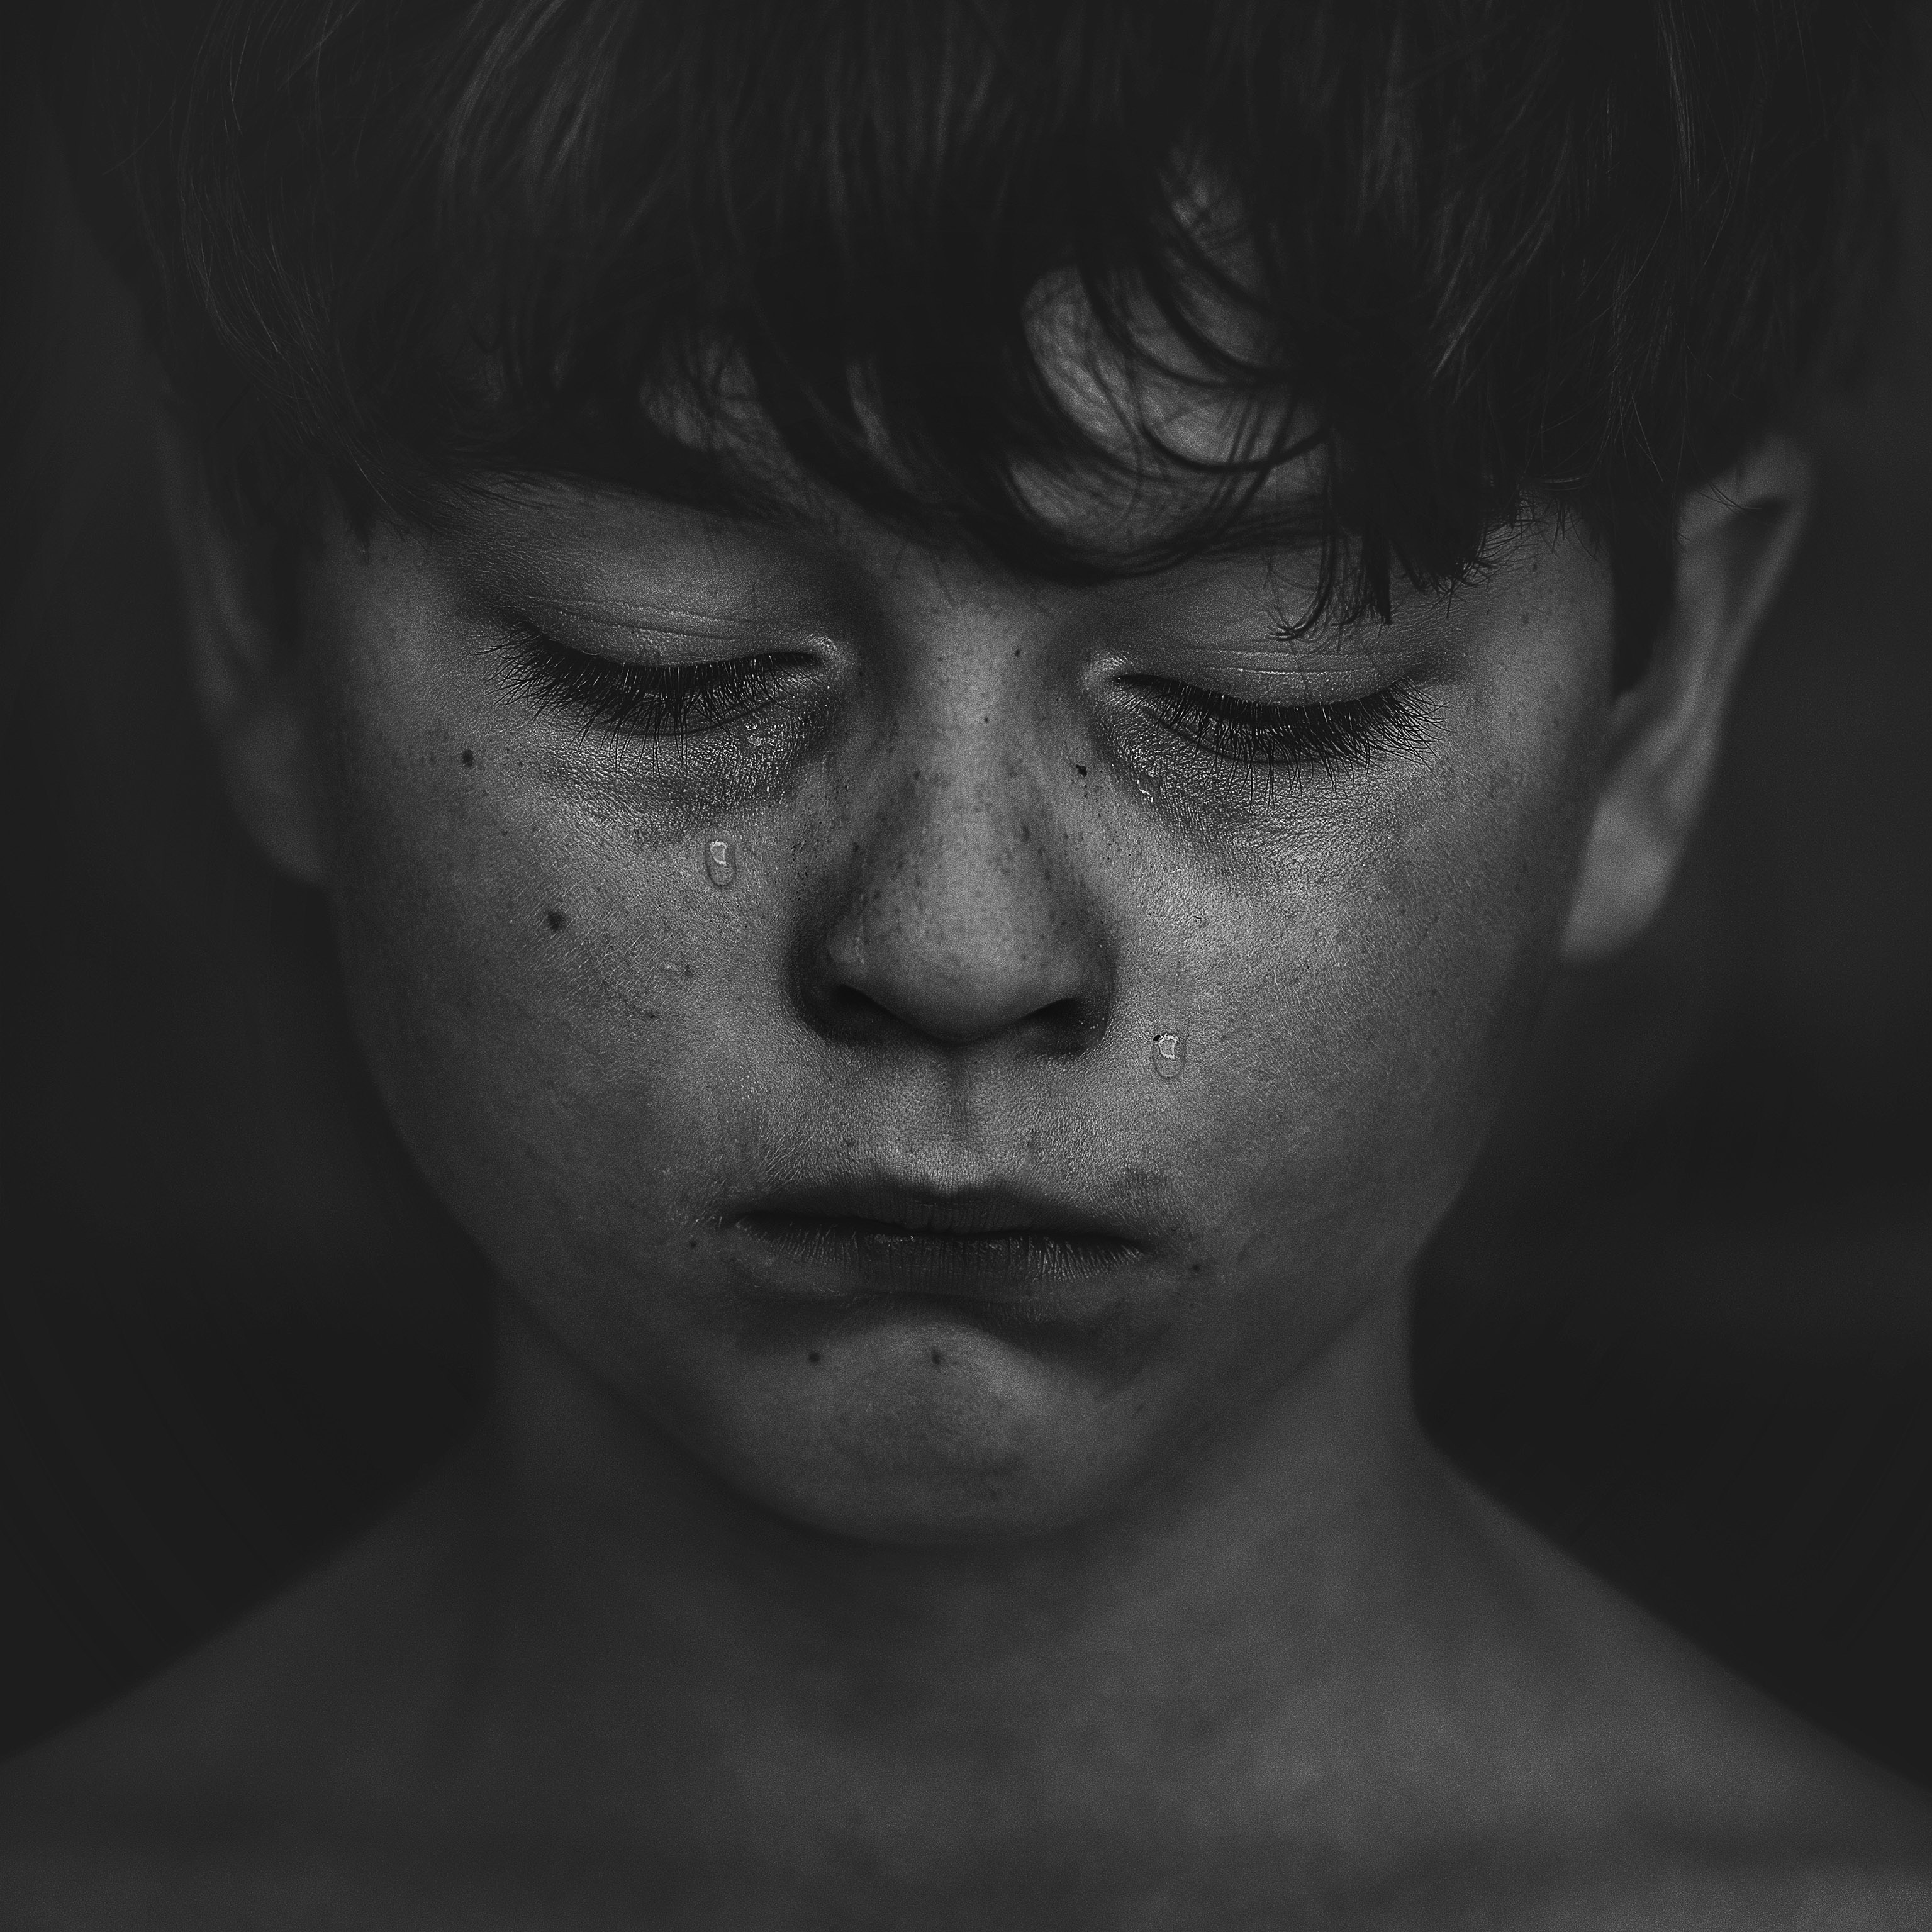 Free stock photo of alone, black and white, boy